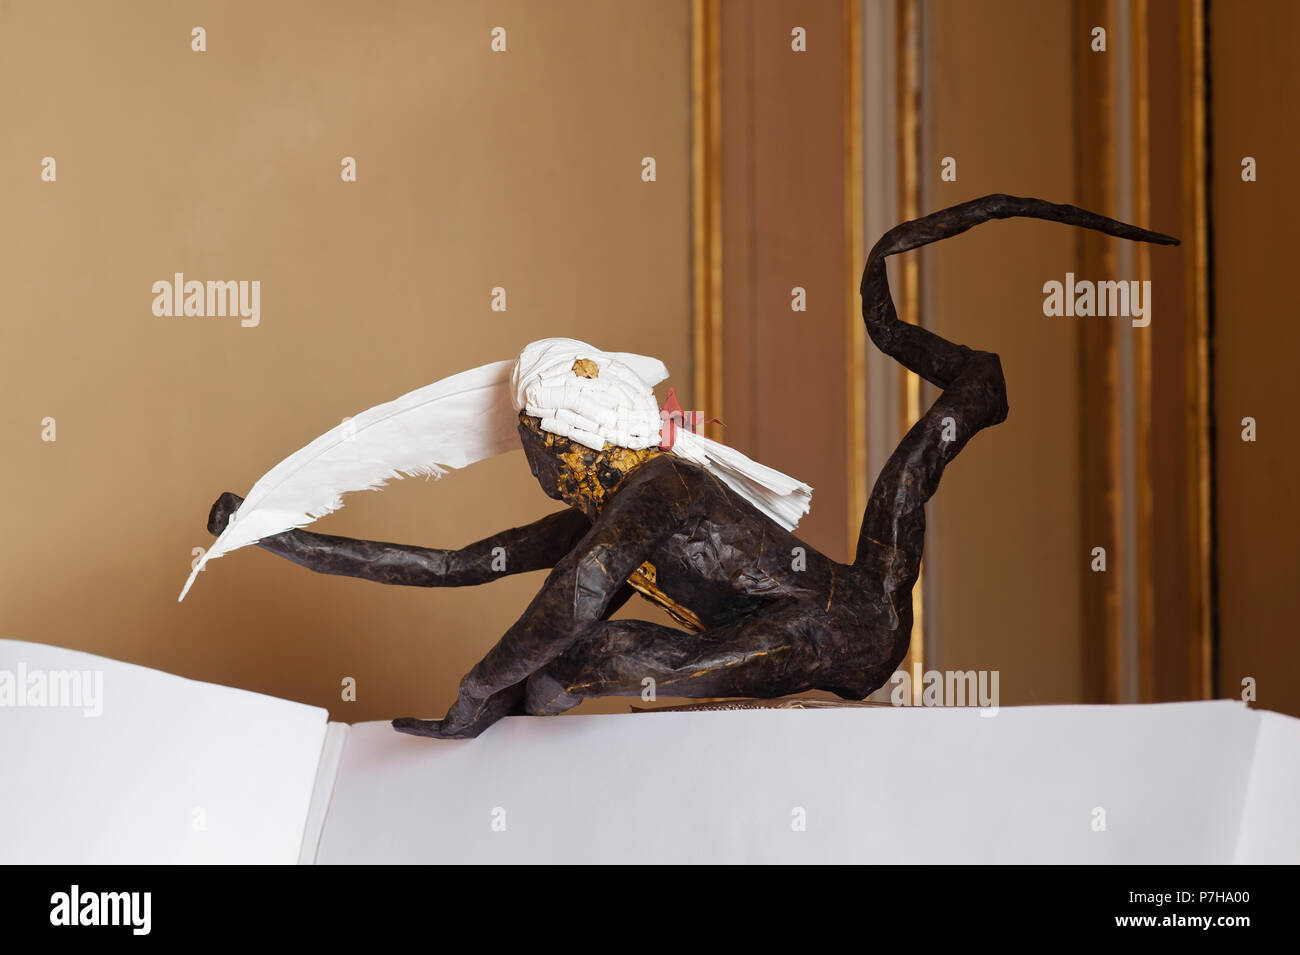 Paper sculpture of monkey holding quill - Stock Image